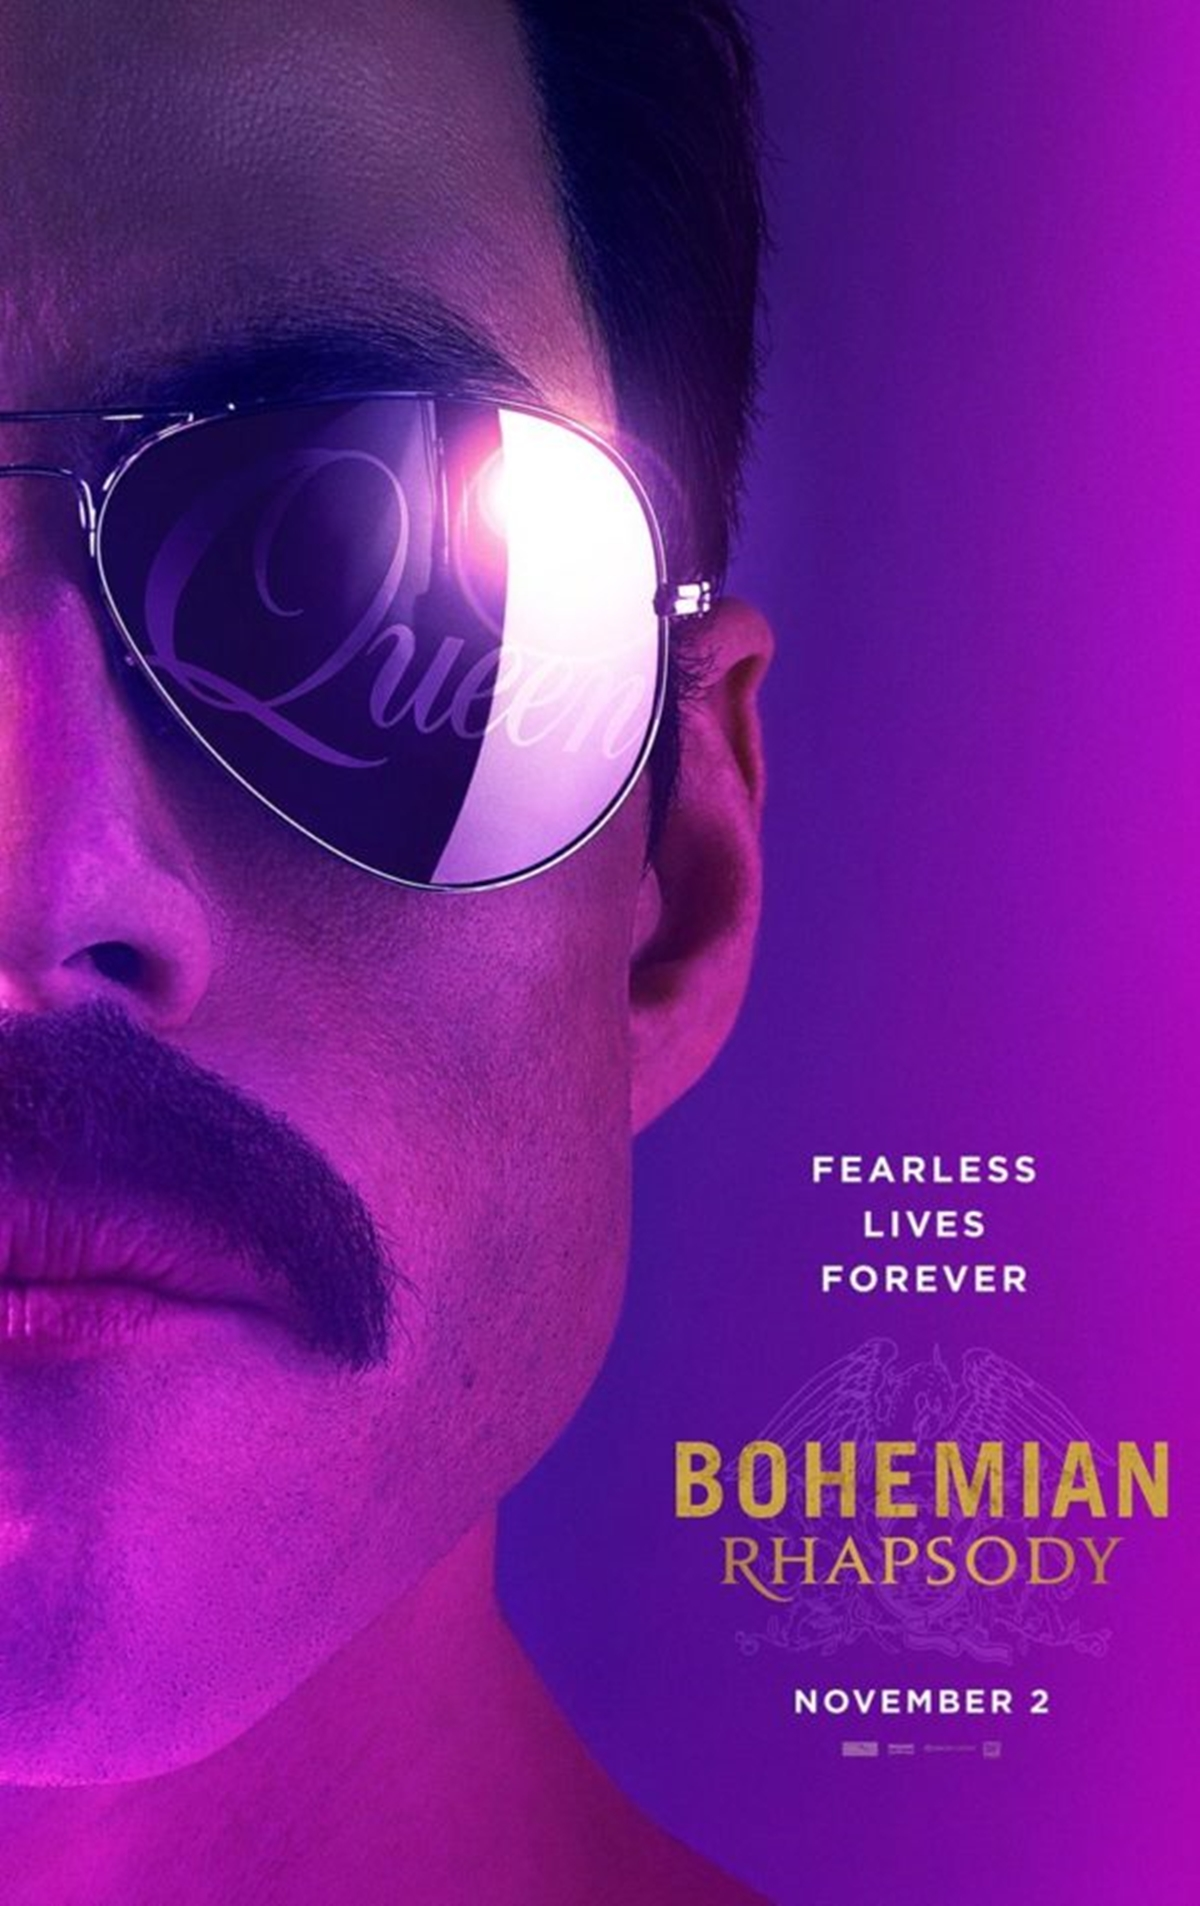 POSTER 1 Here's The First Trailer And Poster For The Queen Biopic 'Bohemian Rhapsody'!